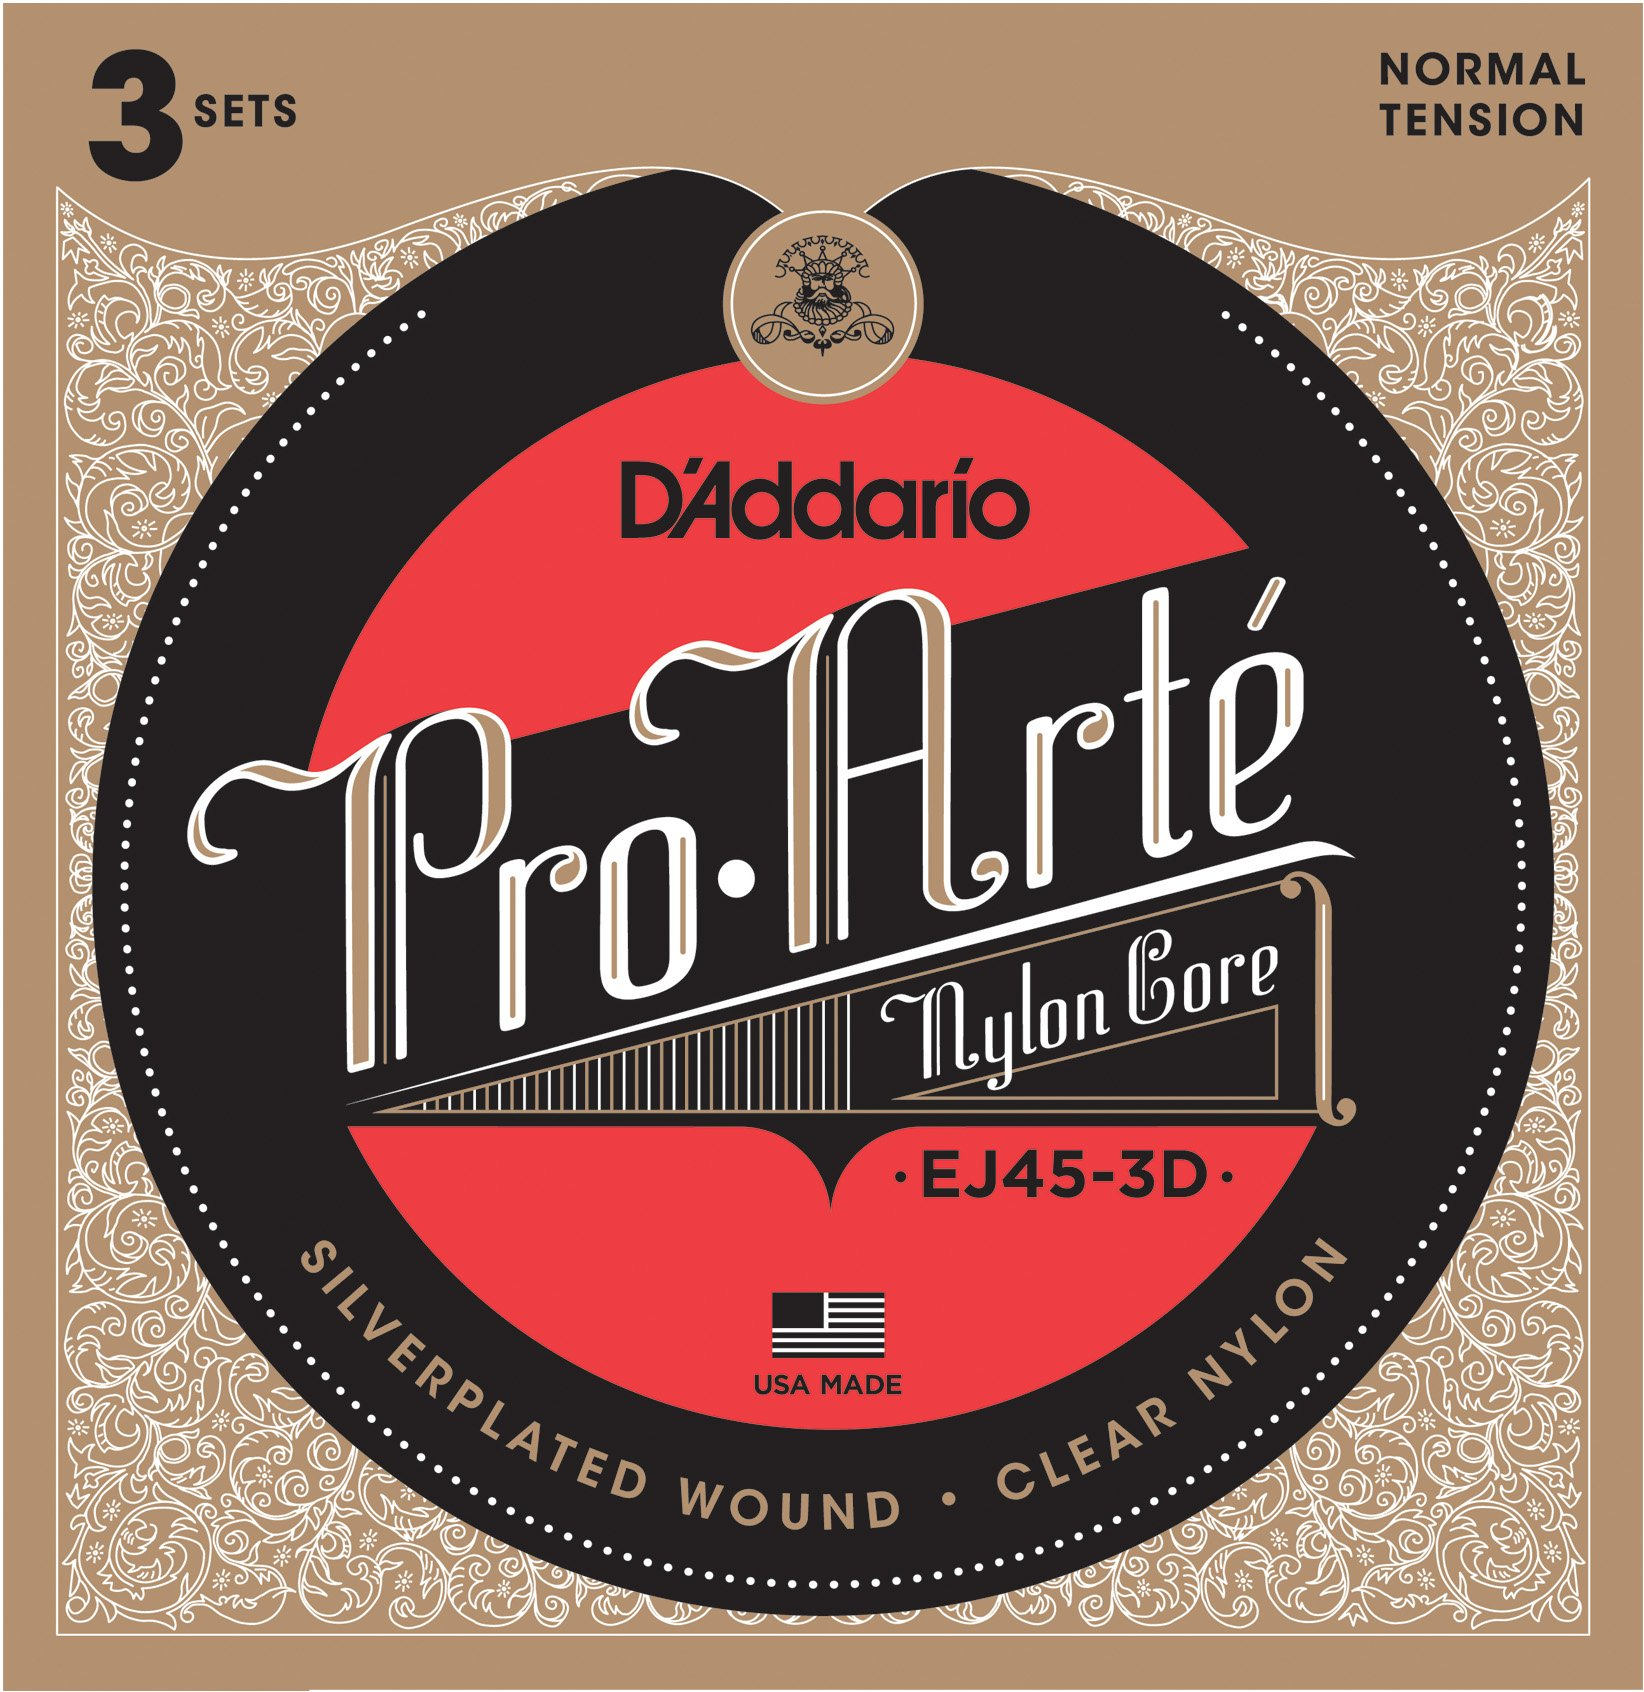 D'Addario EJ45-3D Pro-Arte Nylon Classical Guitar Strings, Normal Tension (3 Sets) - Nylon Core Basses, Laser Selected Trebles - Offers Balance of Volume and Comfortable Resistance by D'Addario